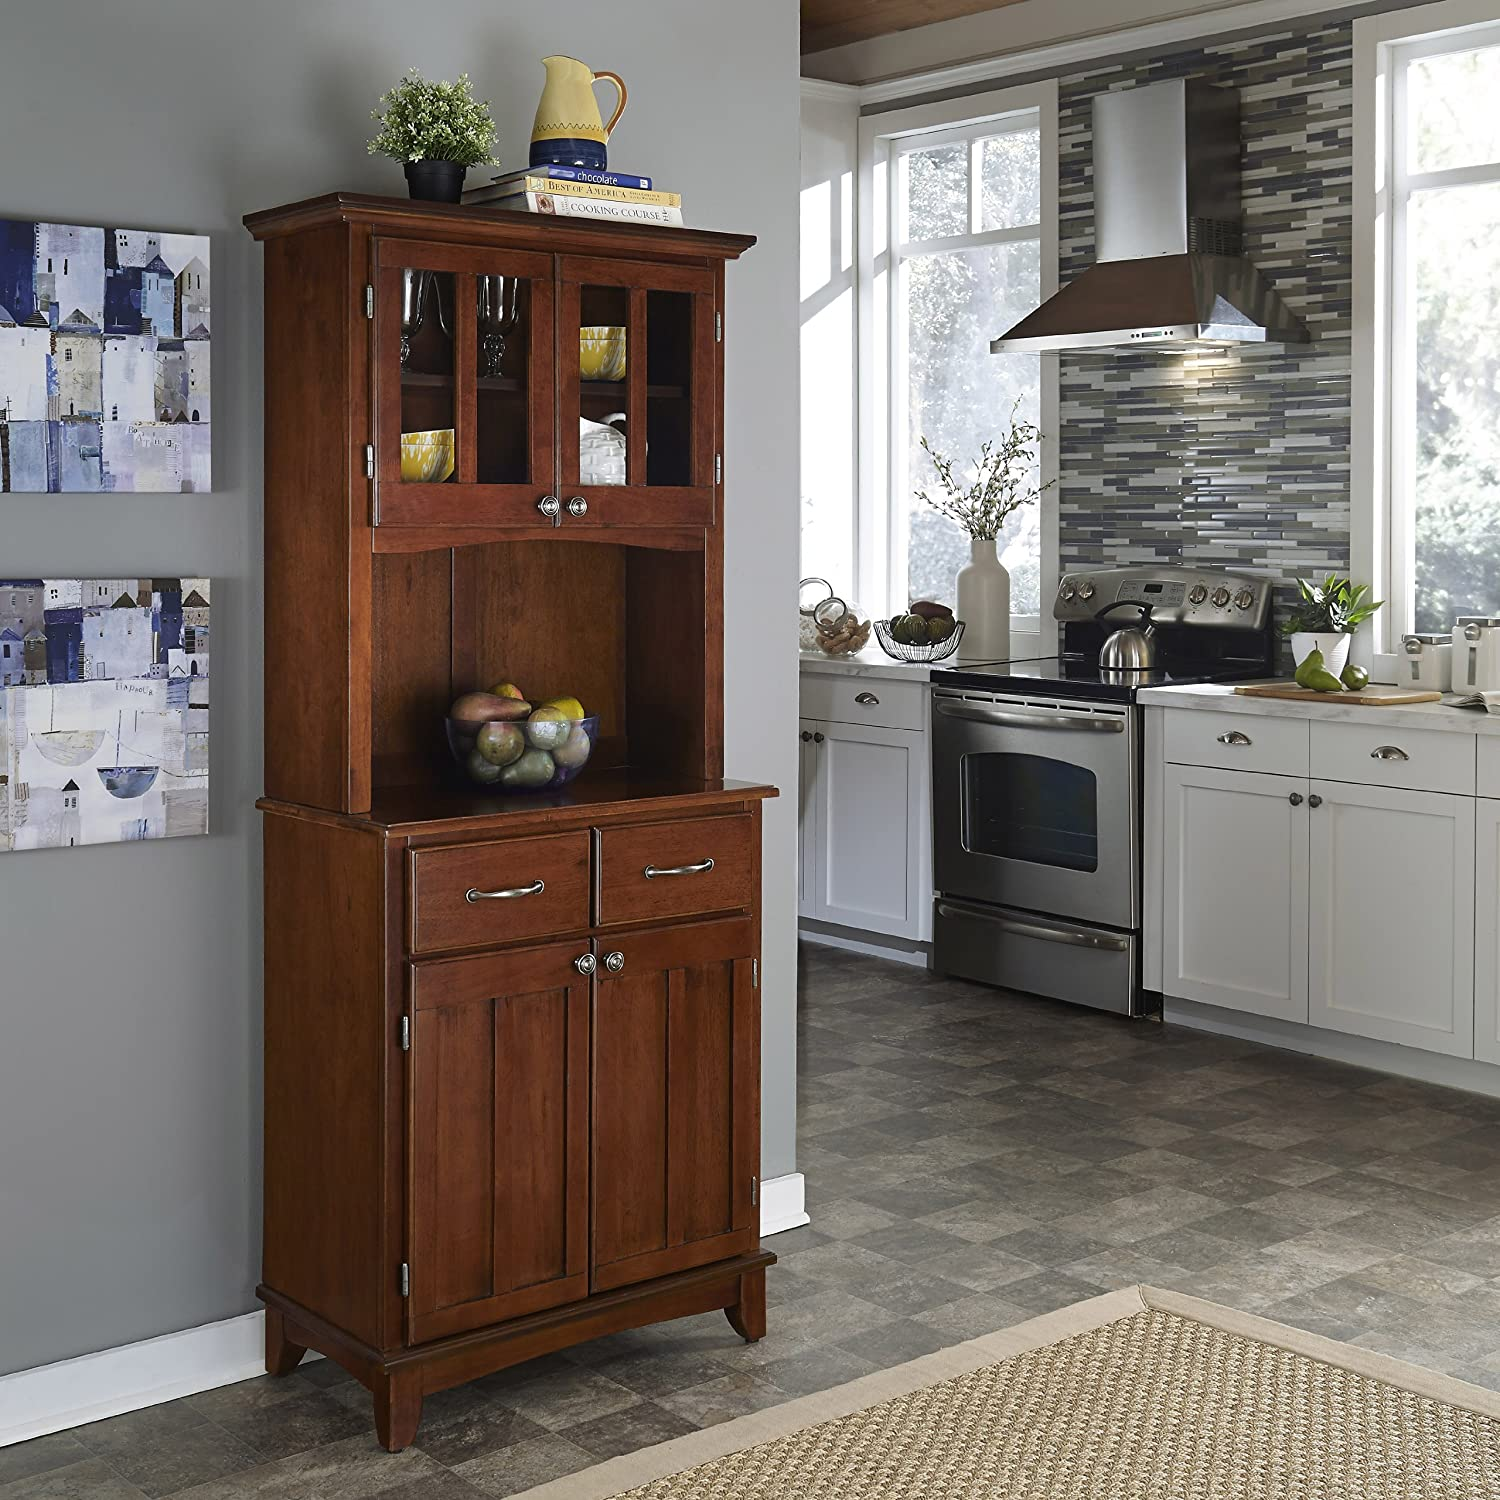 amazon com home styles 5001 0072 72 buffet of buffet 5001 series home styles 5001 0072 72 buffet of buffet 5001 series medium cherry wood top buffet server and hutch medium cherry 29 1 4 inch buffets sideboards